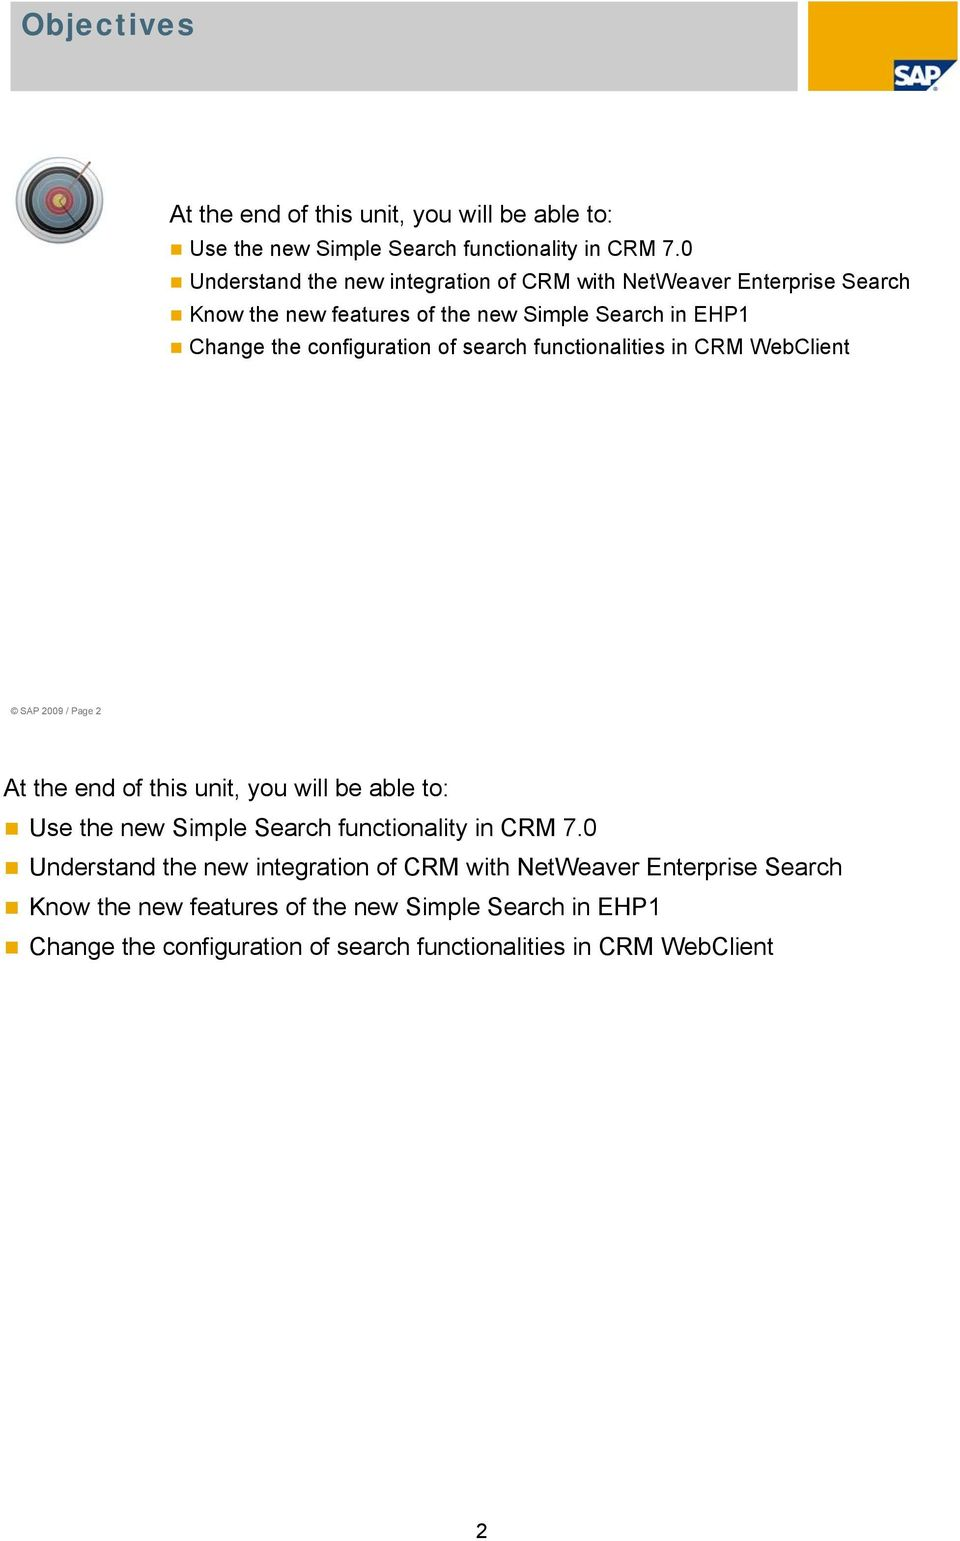 of search functionalities in CRM WebClient SAP 2009 / Page 2 At the end of this unit, you will be able to: Use the new Simple Search functionality in